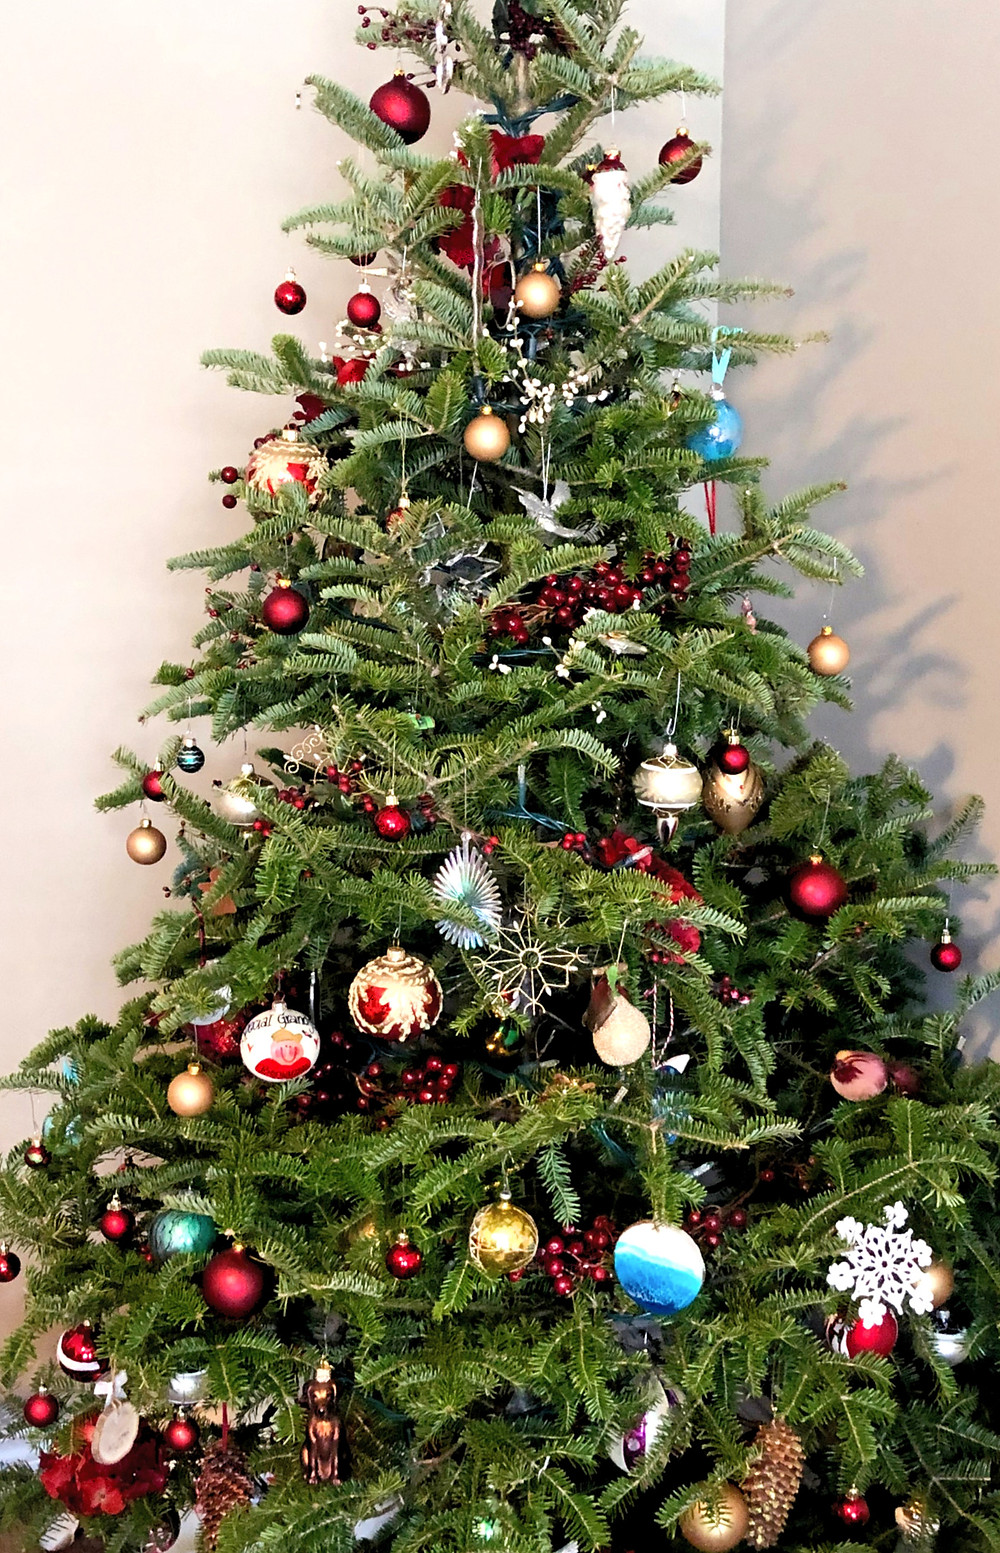 A decorated Christmas tree by Kimberley Eddy